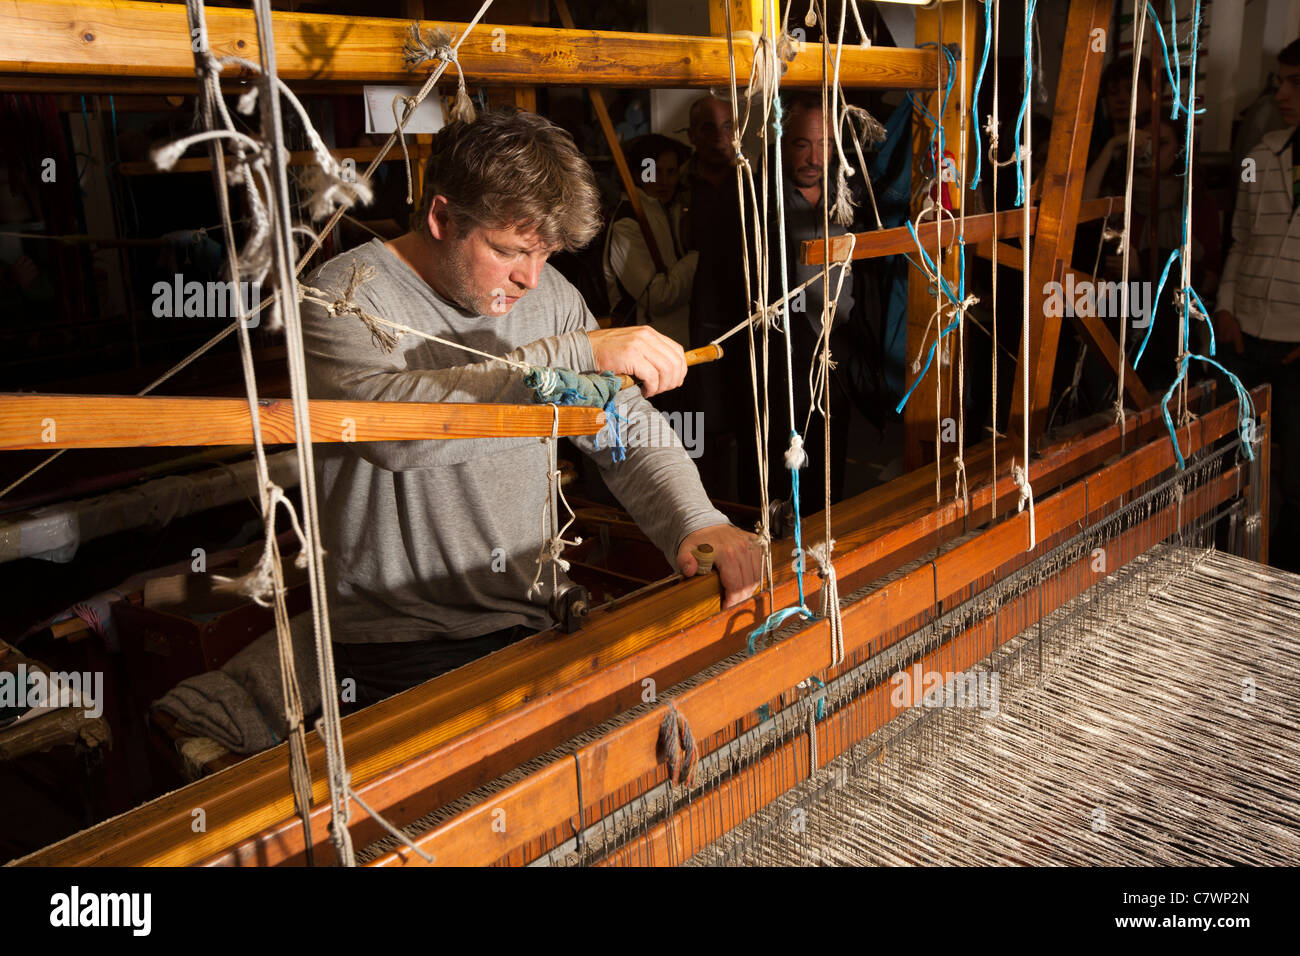 Ireland, Co Wicklow, Avoca Handweavers Mill, weaver weaving cloth on traditional fly shuttle hand loom - Stock Image